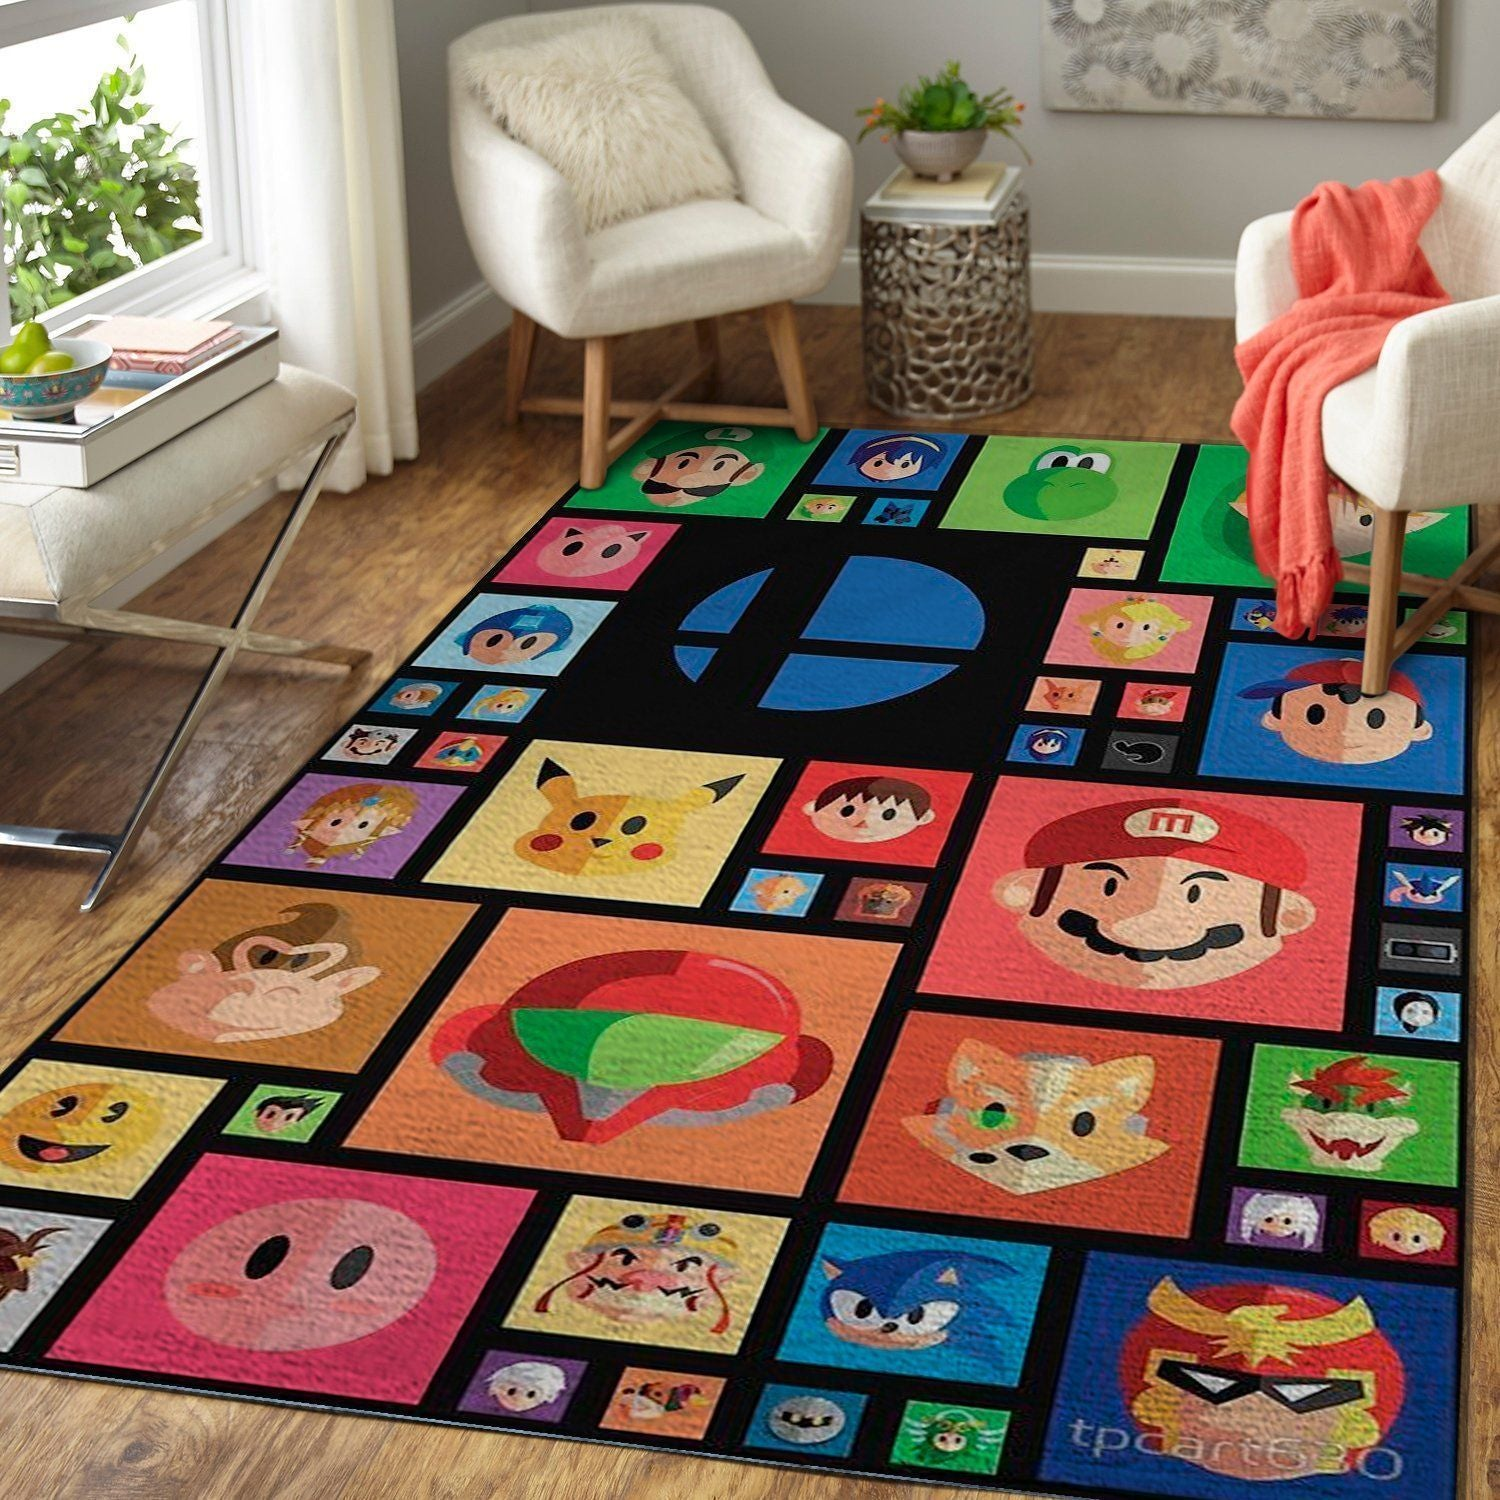 Super Smash Bros. Ultimate Area Rug Nintendo Video Game Carpet, Gamer Living Room Rugs, Floor Decor 1910132